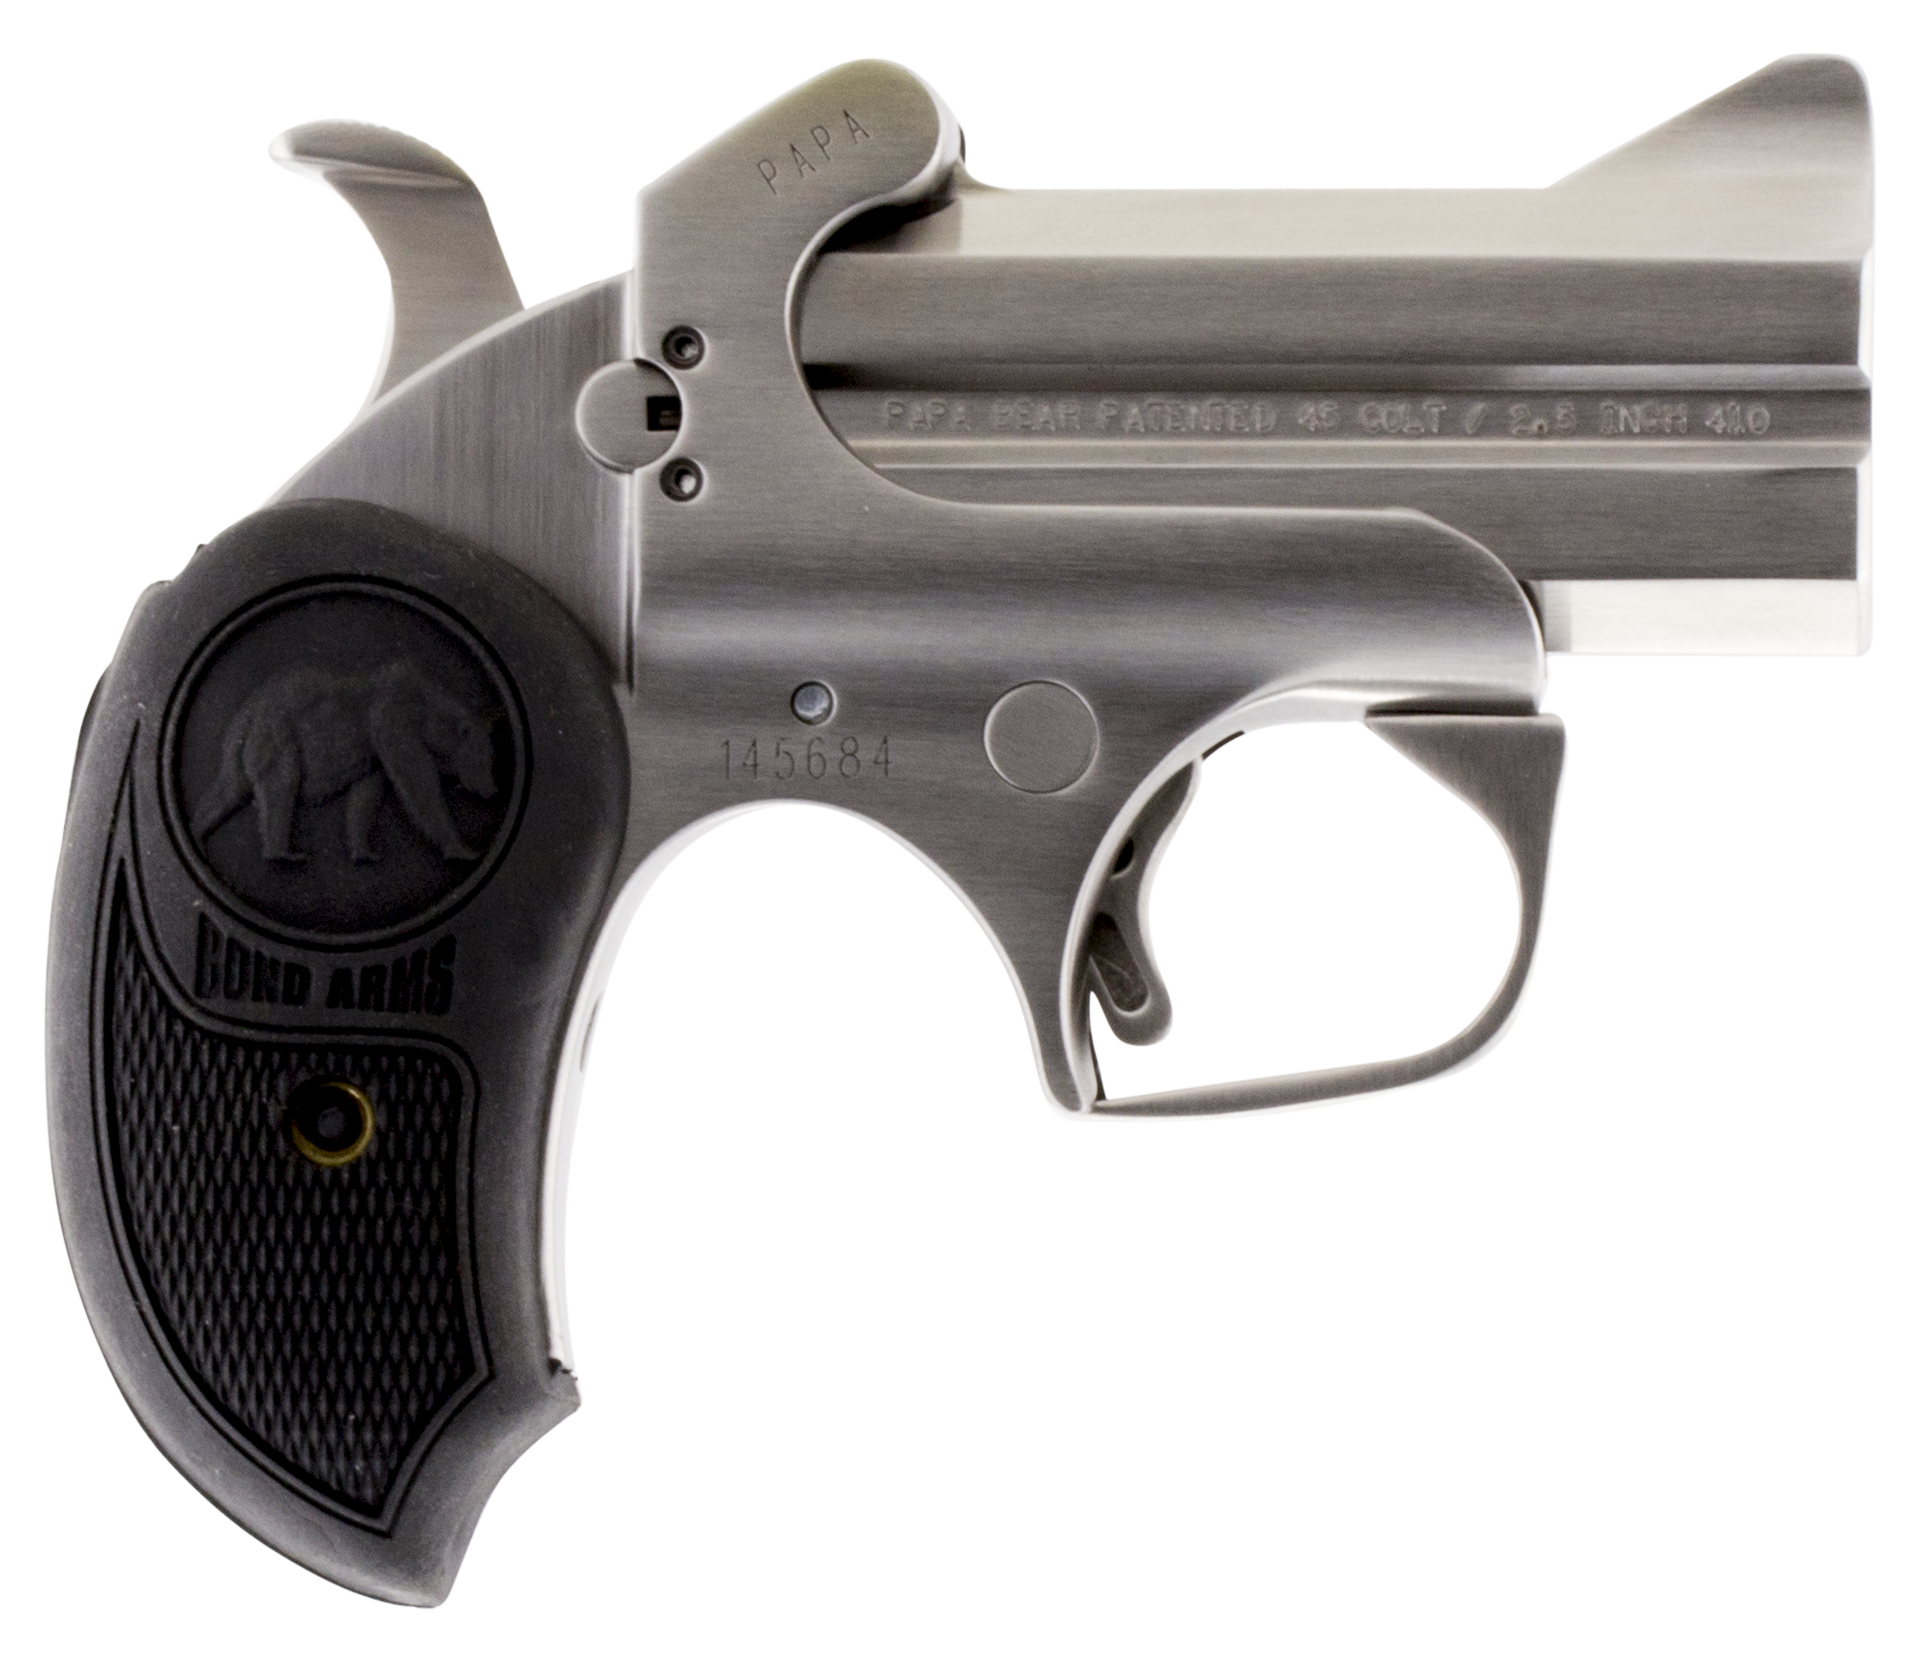 Bond Arms BAPB Papa Bear 45 Colt/410 Pistol Single 45 Colt (LC)/410 Gauge 3